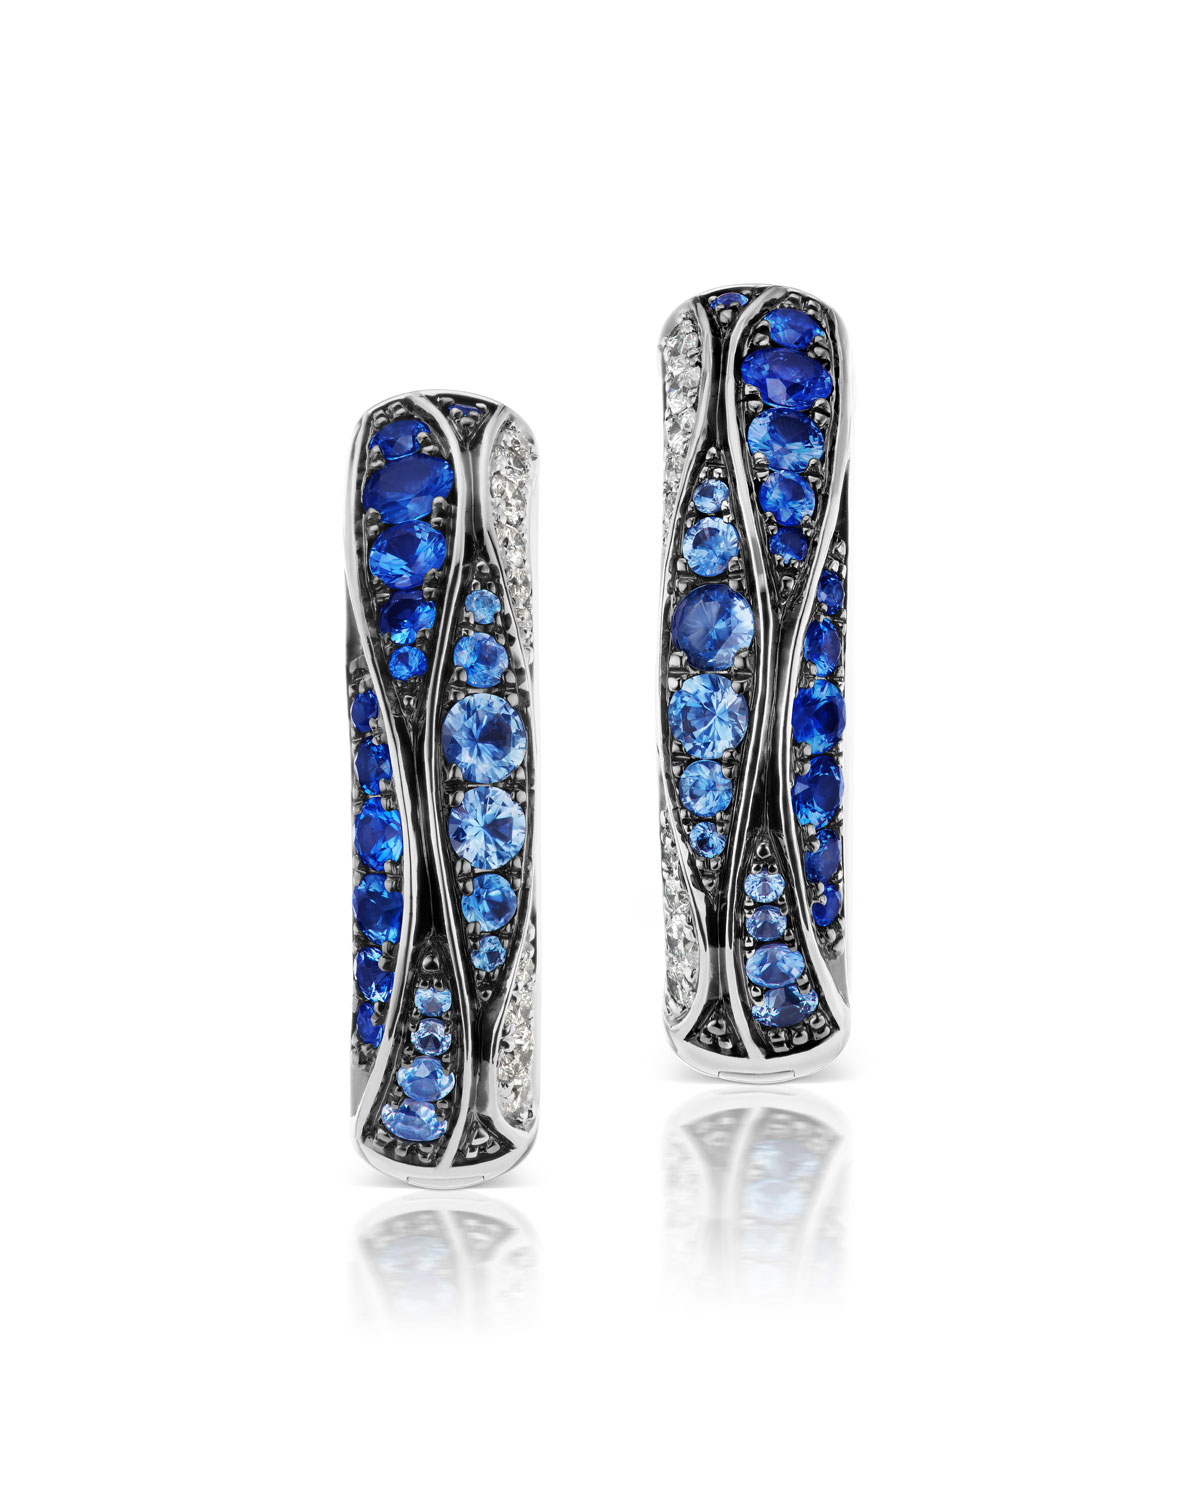 MARIA CANALE 18K White Gold Sapphire & Diamond Earrings